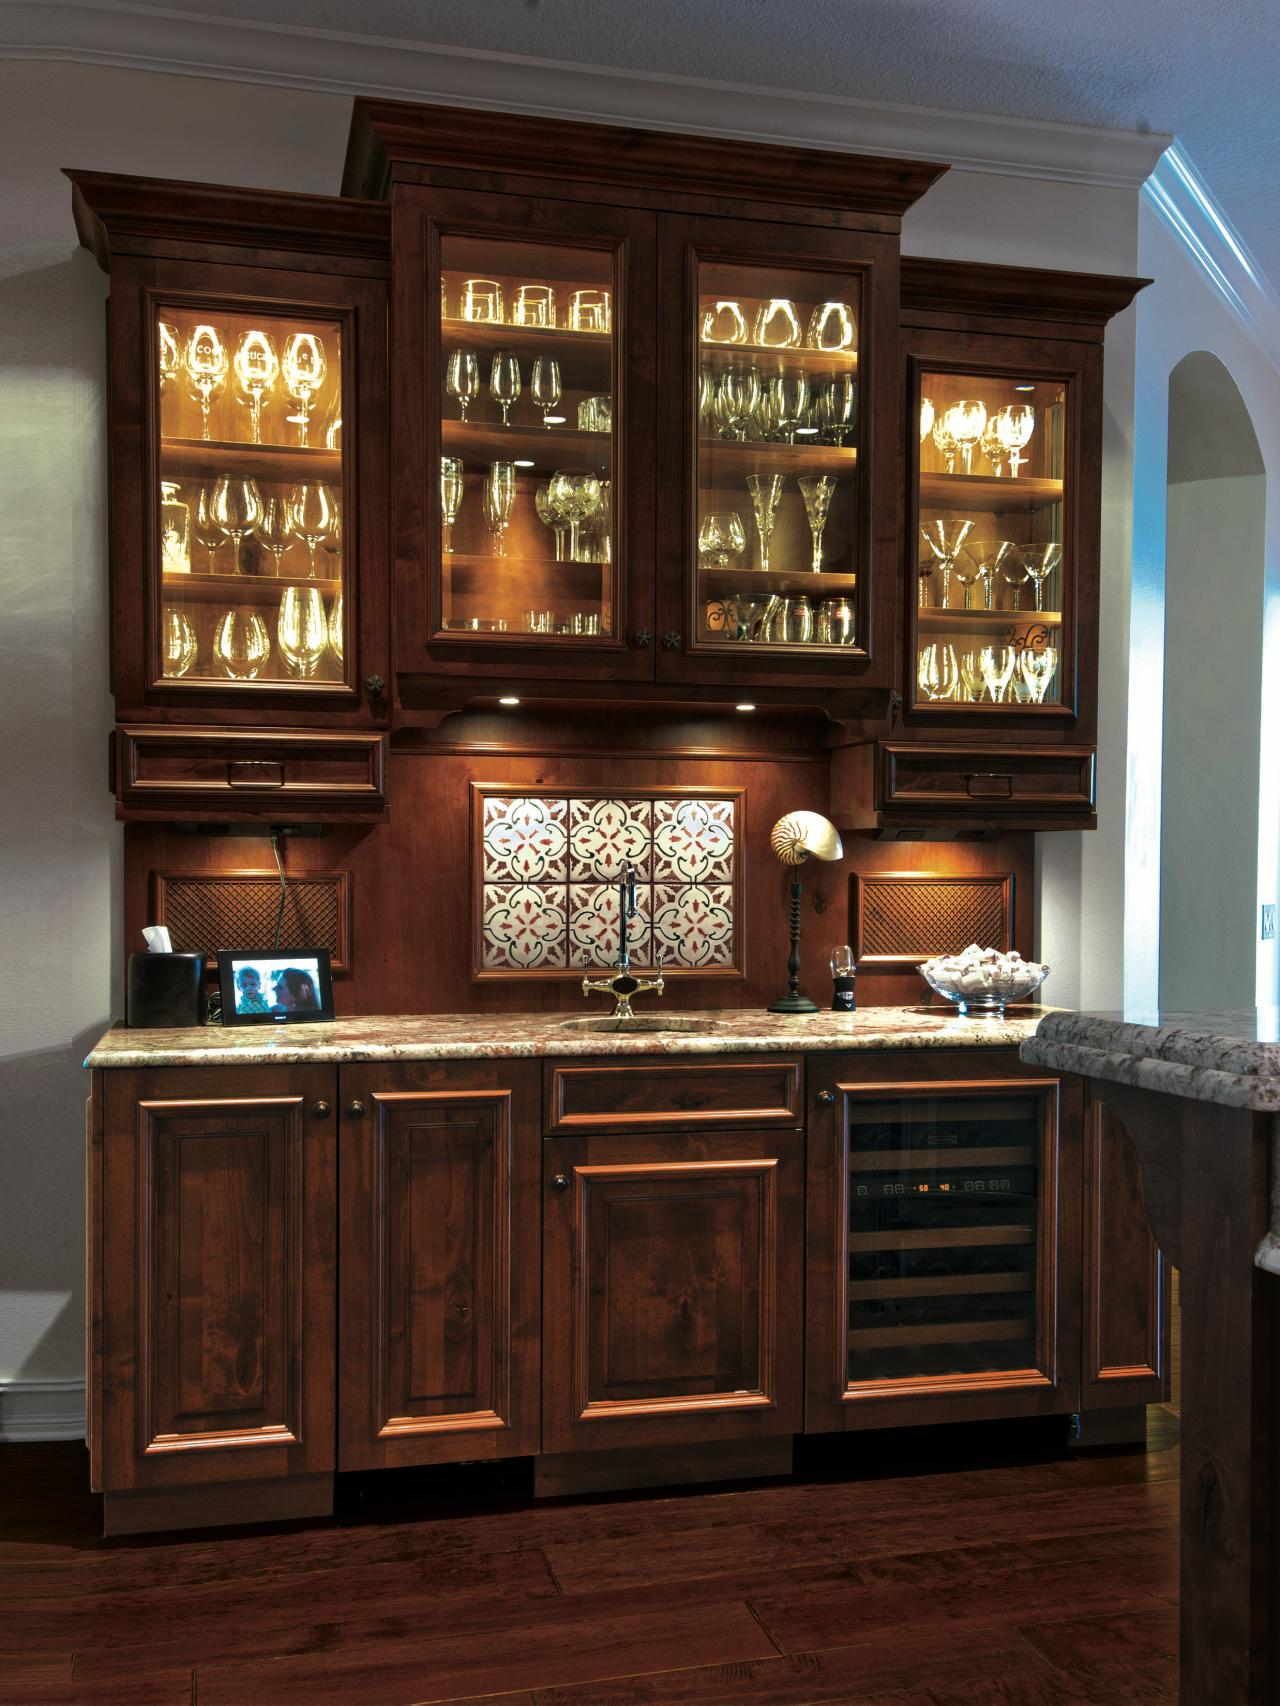 The entertainer 39 s guide to designing the perfect wet bar - Bar cabinets for home ...